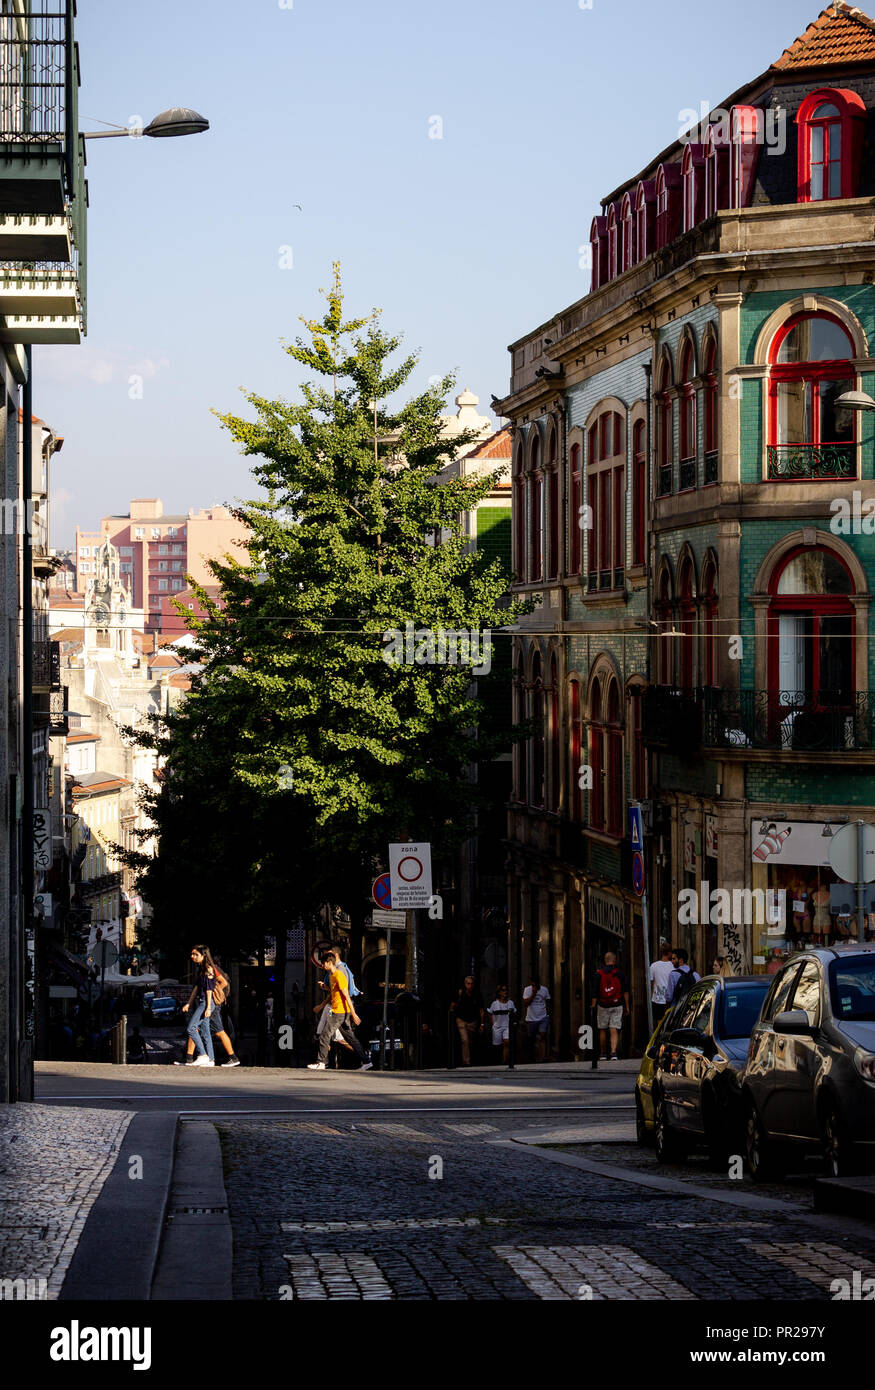 Various people walk in the middle of a street at Porto. - Stock Image